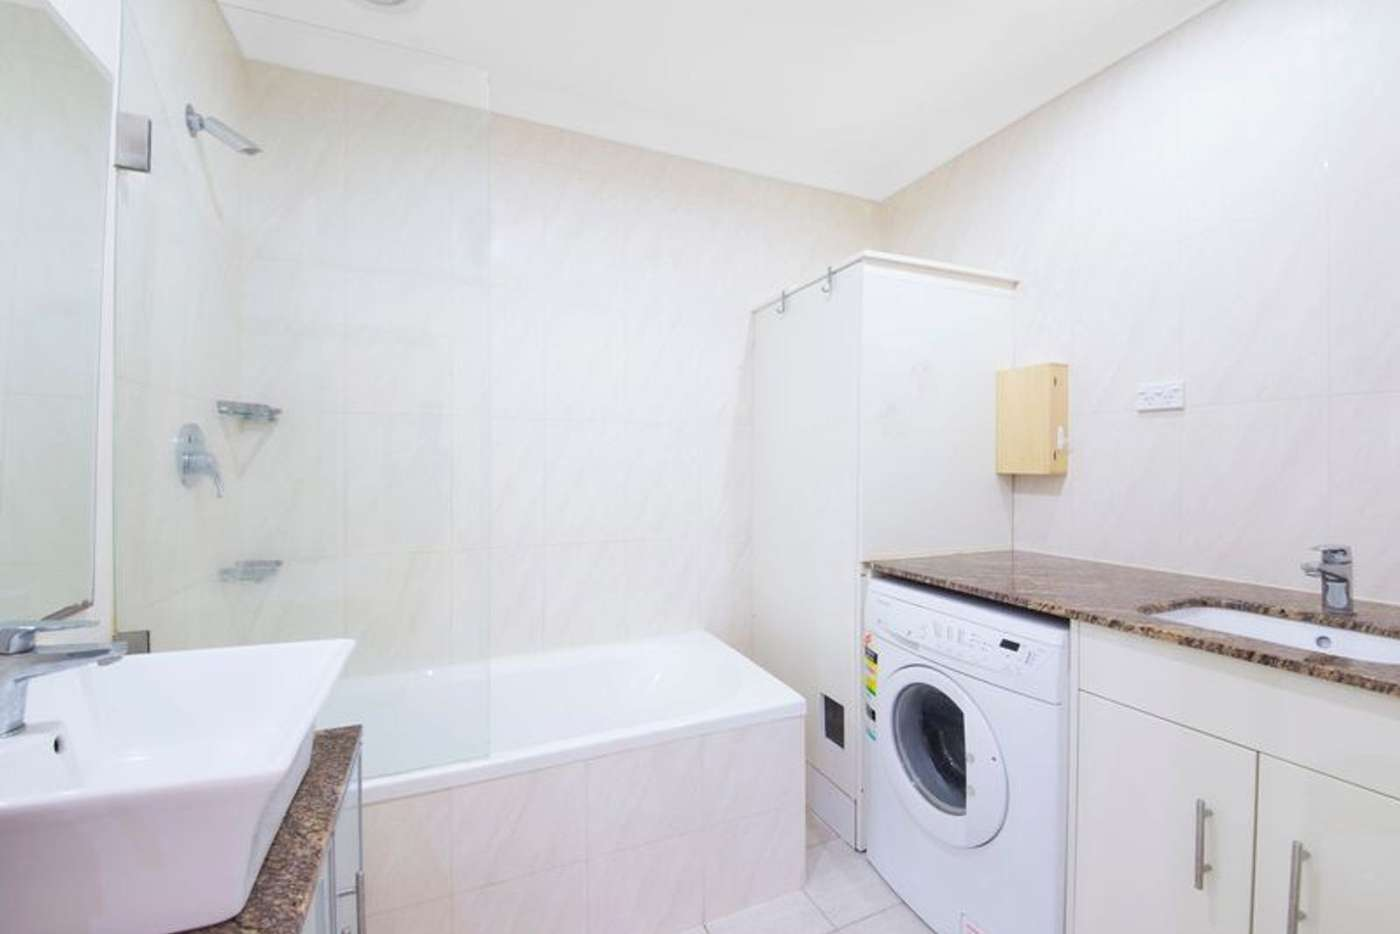 Sixth view of Homely apartment listing, 509/39 Grenfell Street, Adelaide SA 5000